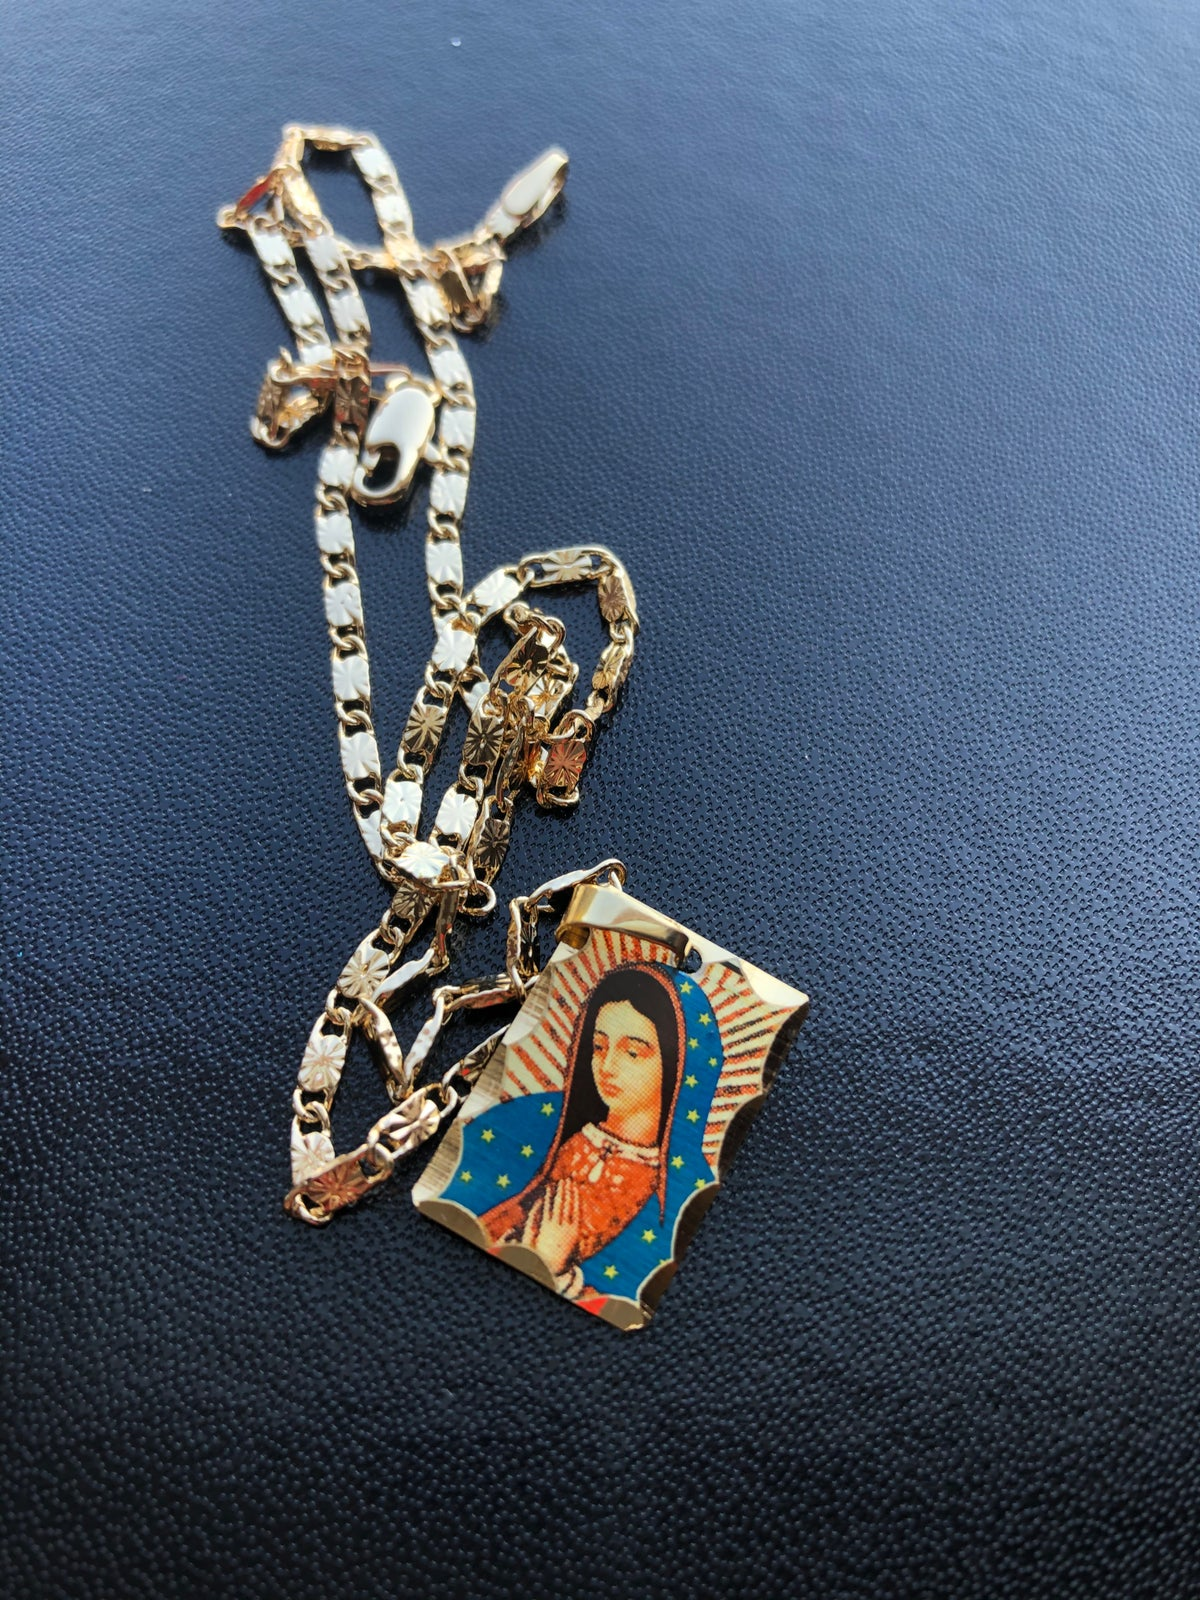 Image of Medalla Con Oración